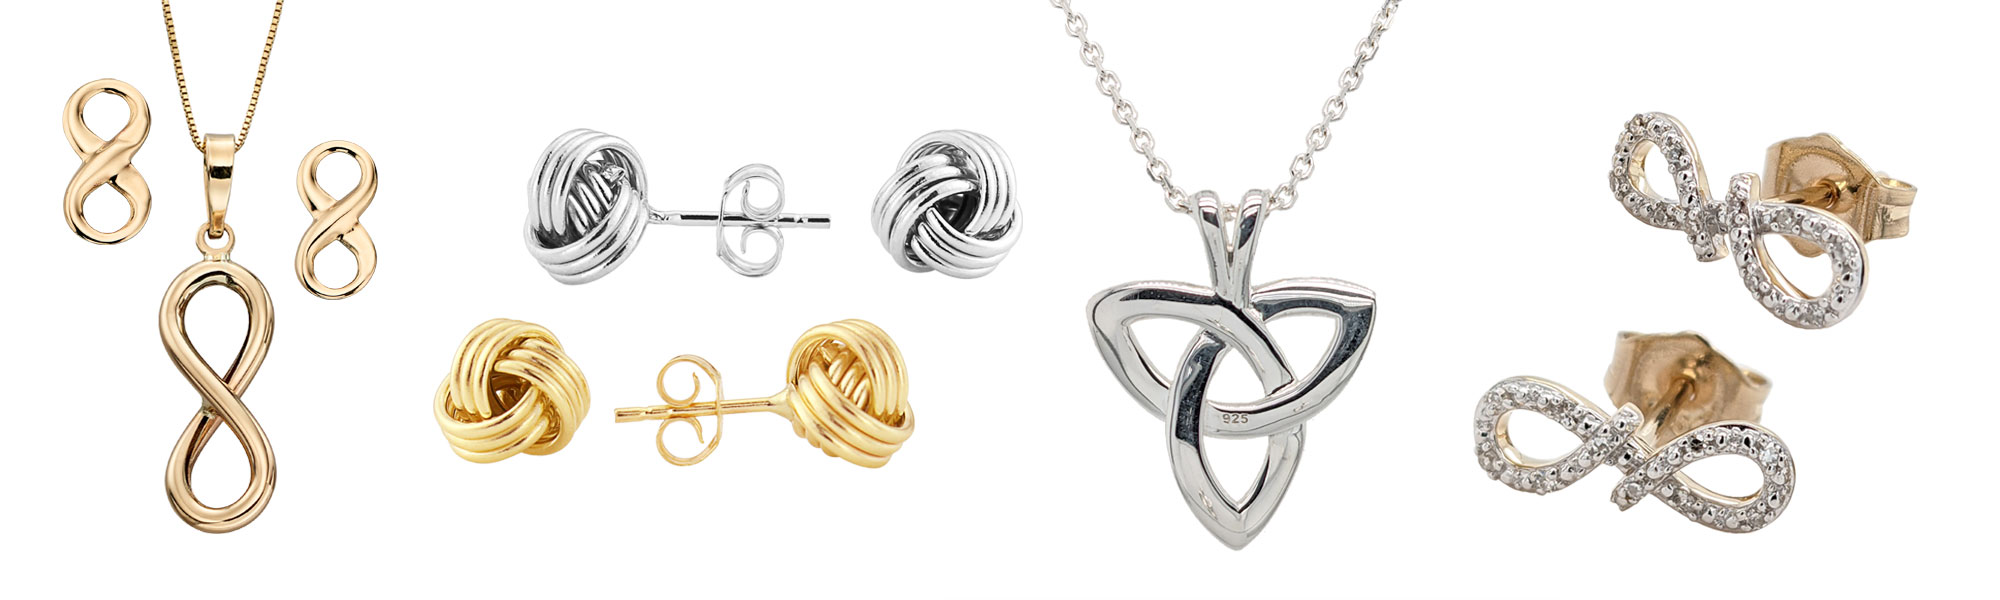 All about Knots from Sally Thornton Jewellery Blog on Knots from Thorntons Jewellers Kettering Northampton